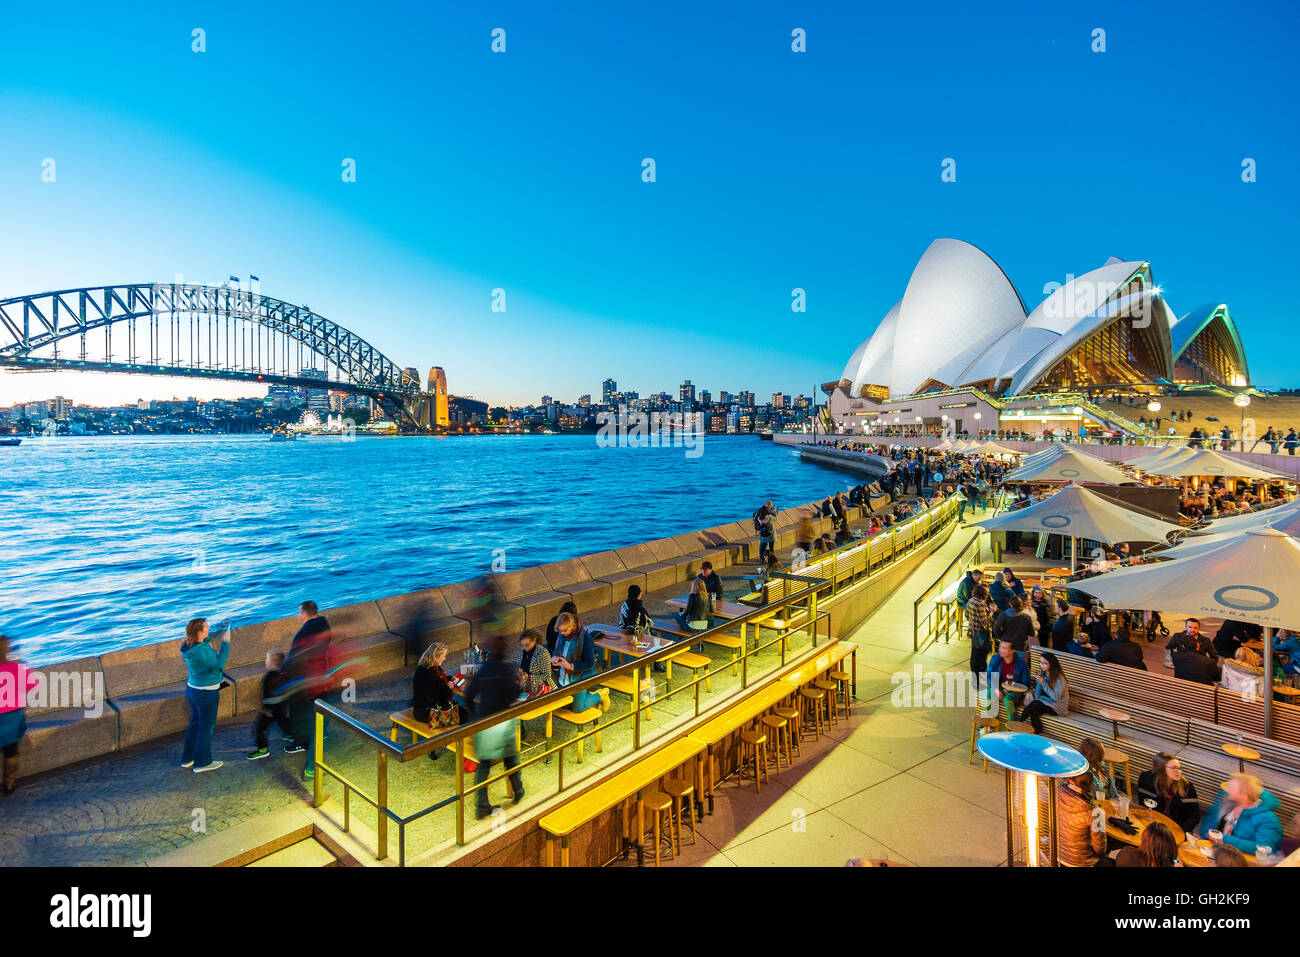 People dining at outdoor restaurants in Circular Quay in Sydney, Australia - Stock Image